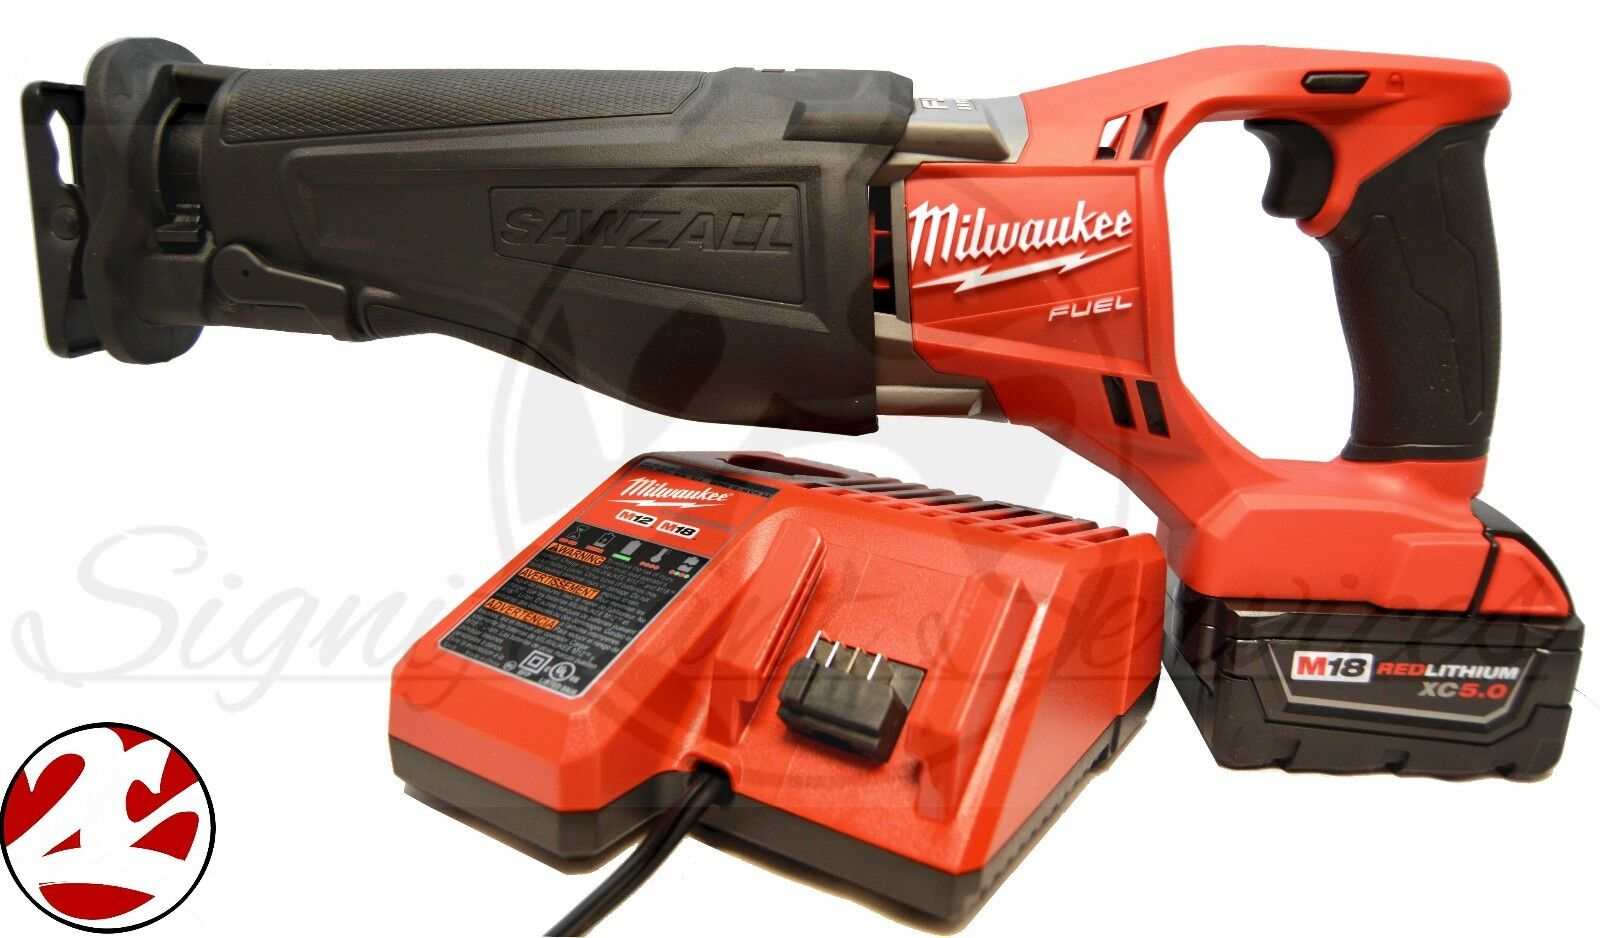 milwaukee 2720 21 m18 fuel brushless sawzall cordless. Black Bedroom Furniture Sets. Home Design Ideas